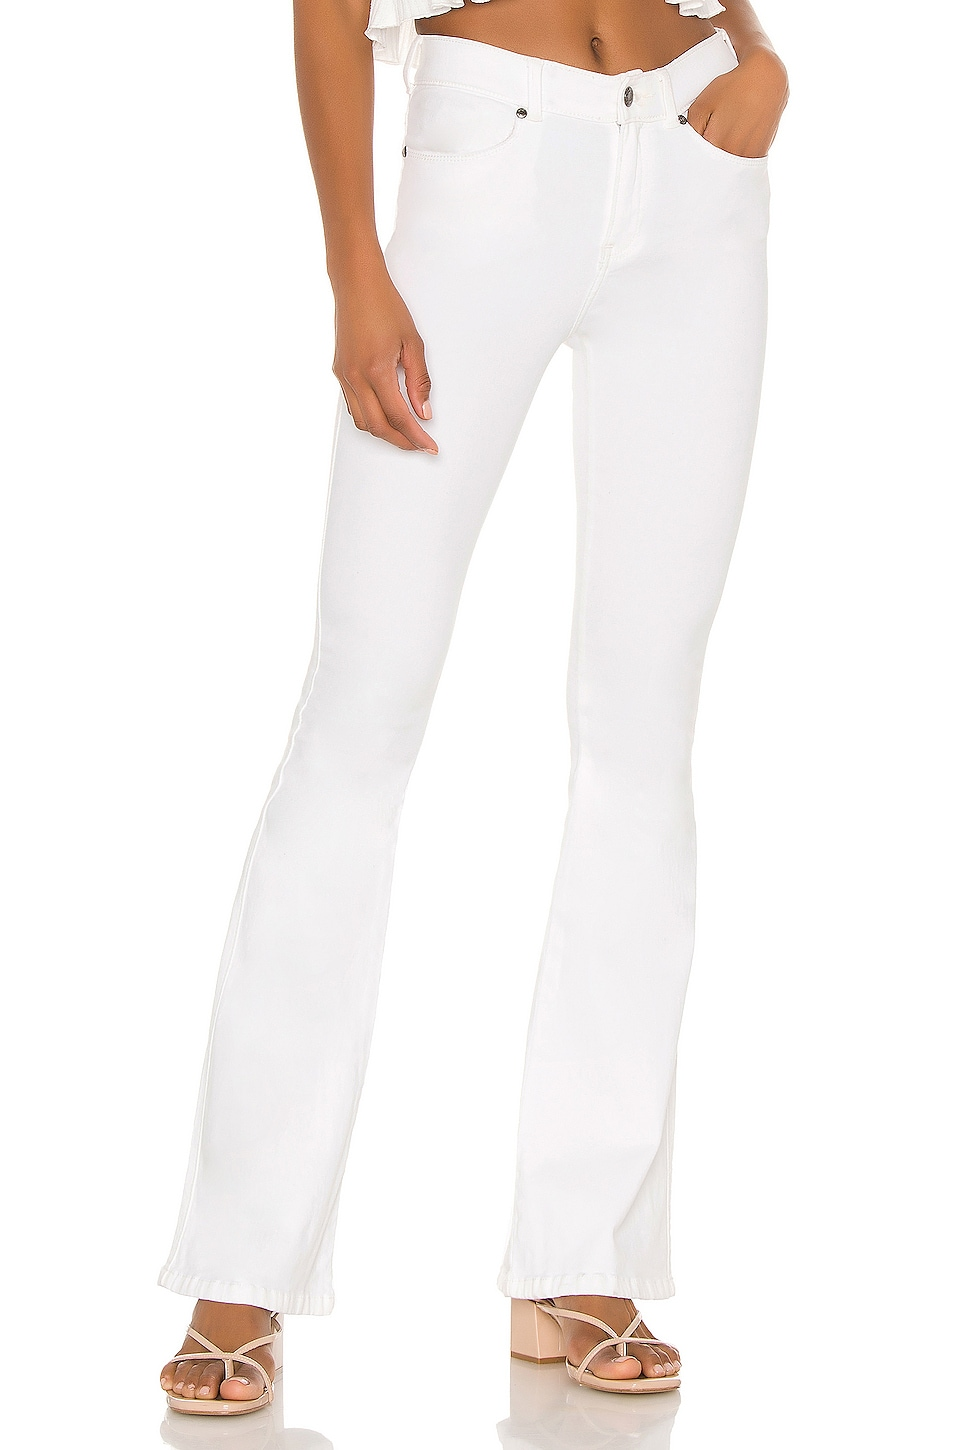 Dr. Denim Macy Flare in White with Rips